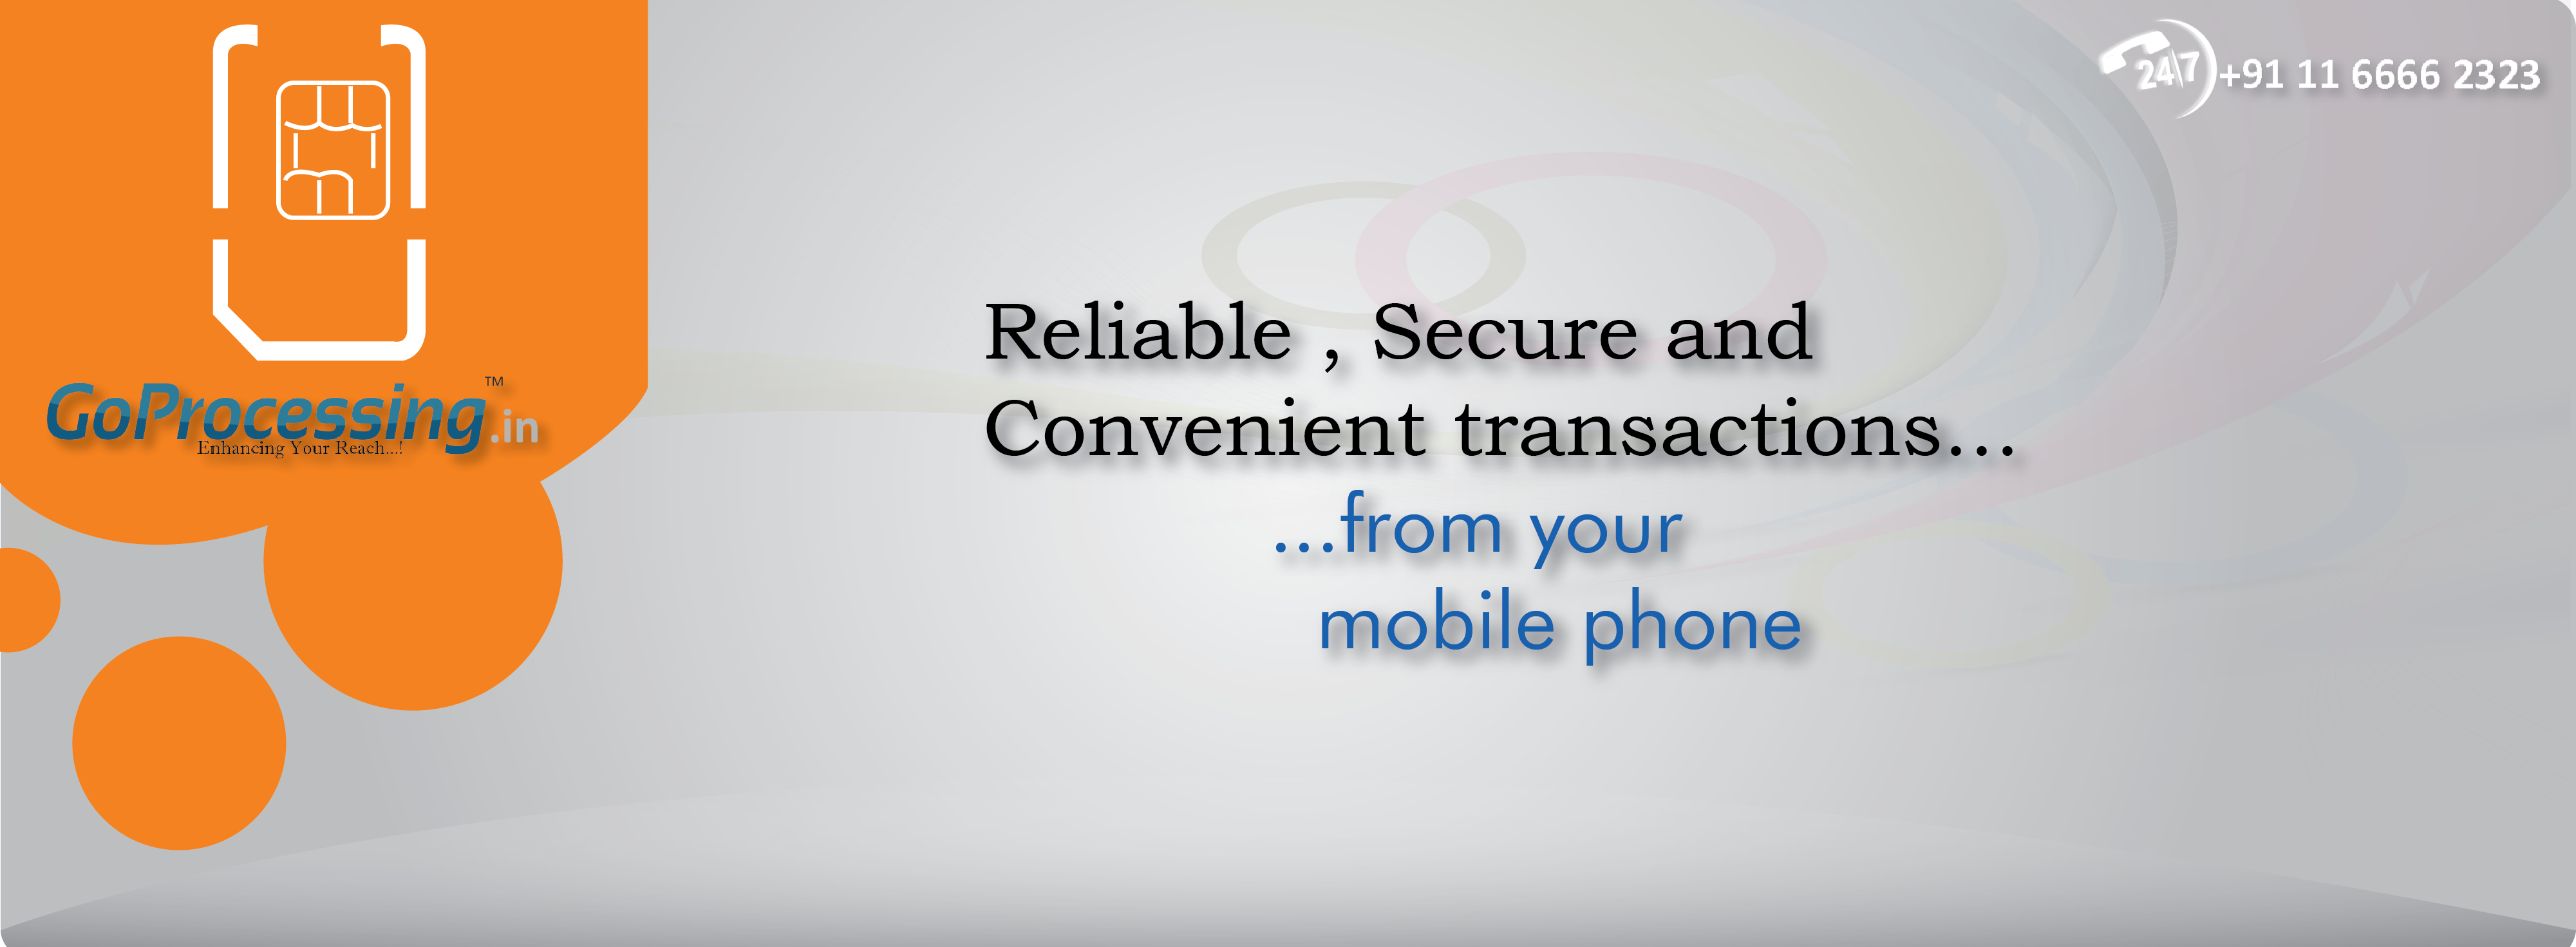 #Single #Sim #multiple #services very #simple #secure and ...